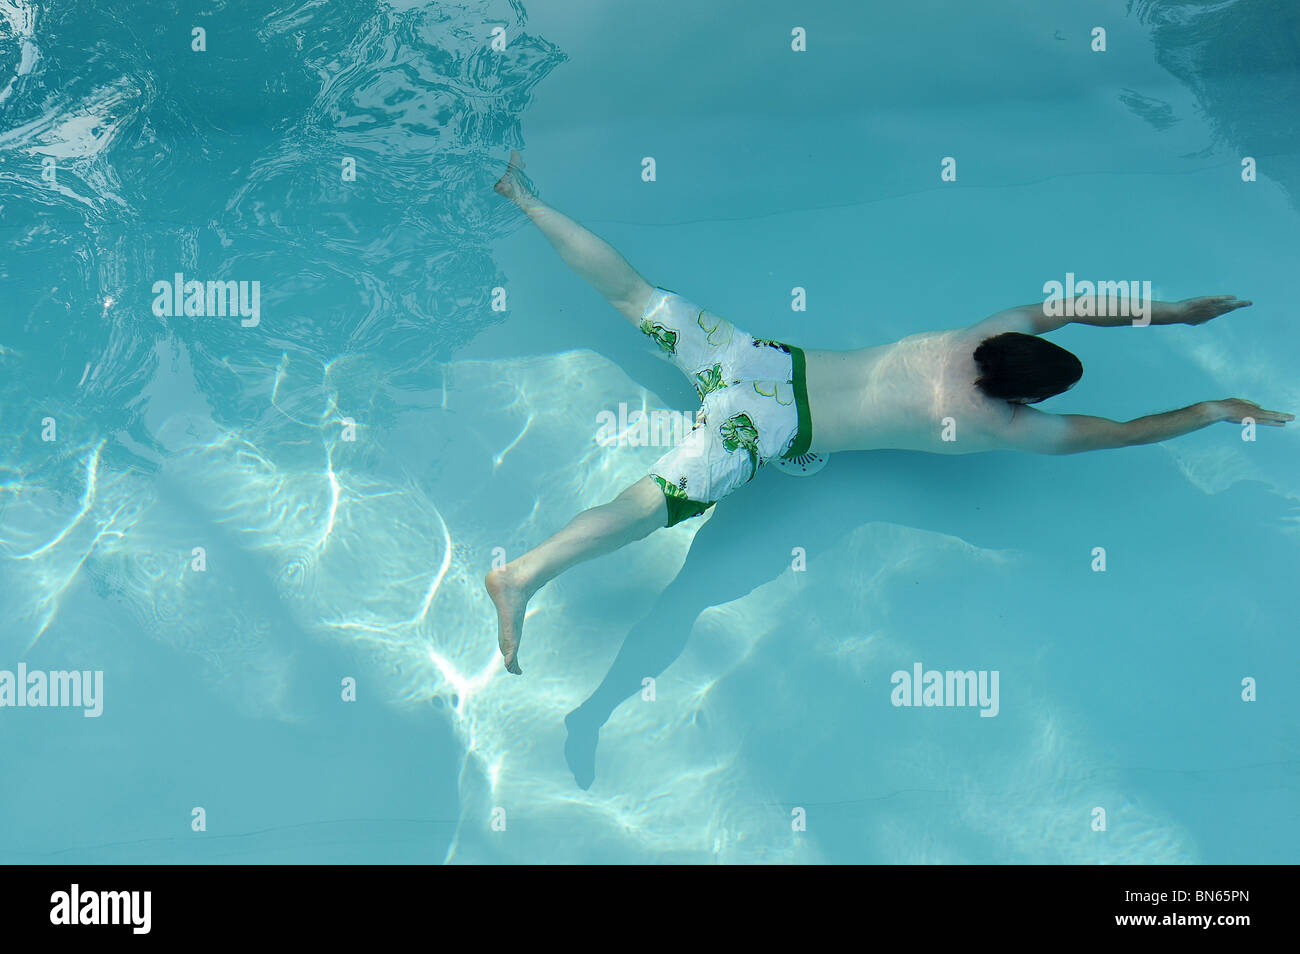 A man wearing board shorts swims under water in a swimming pool in Tours, France. - Stock Image